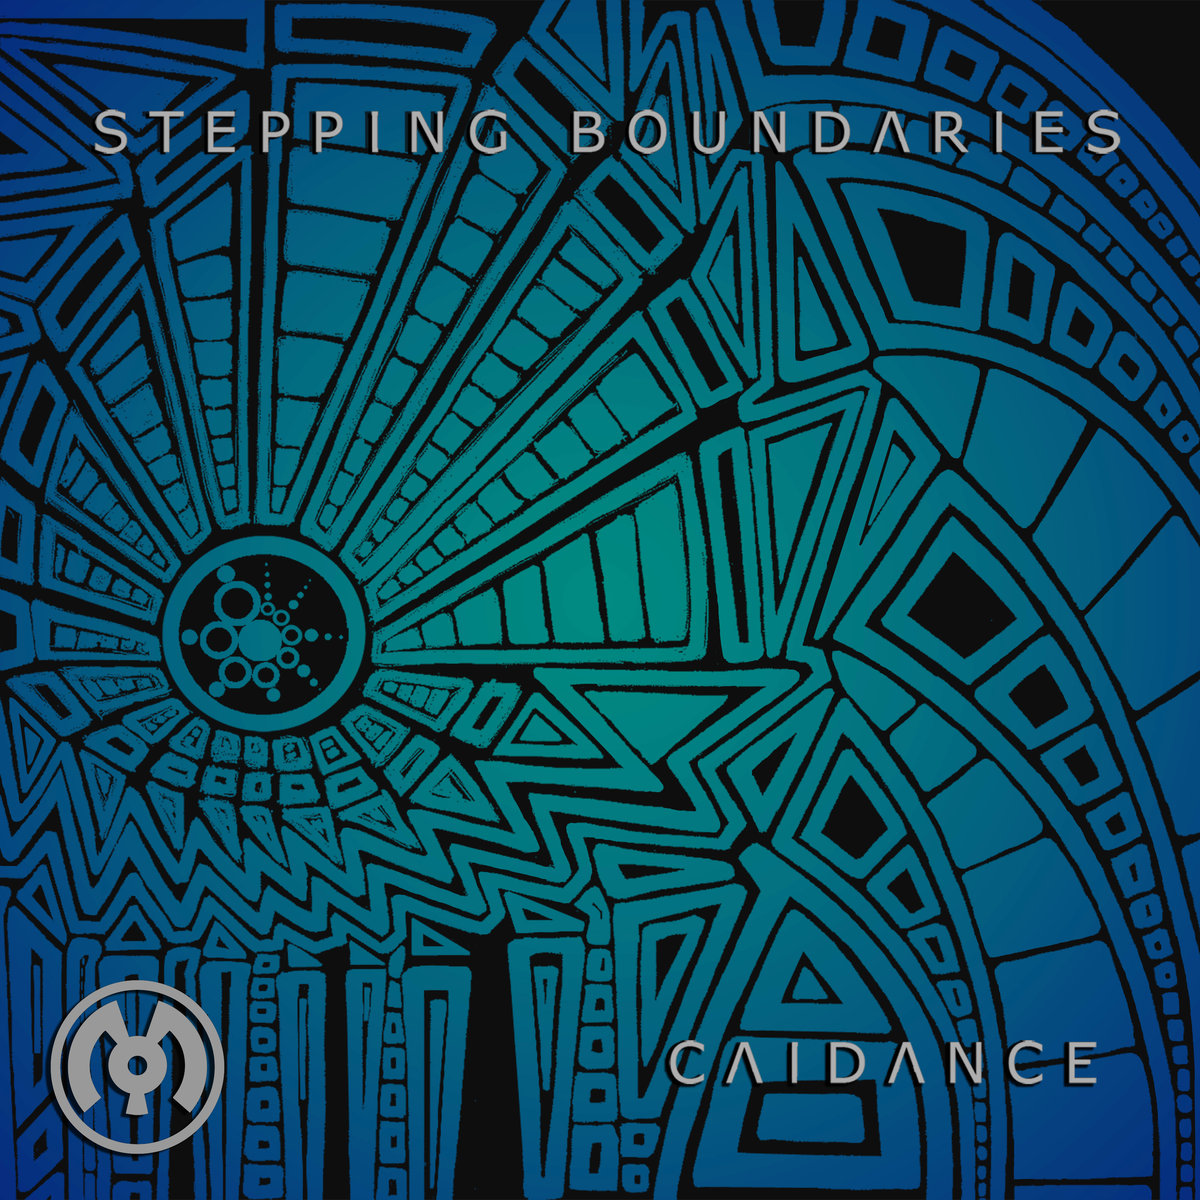 Caidance - Stepping Boundaries